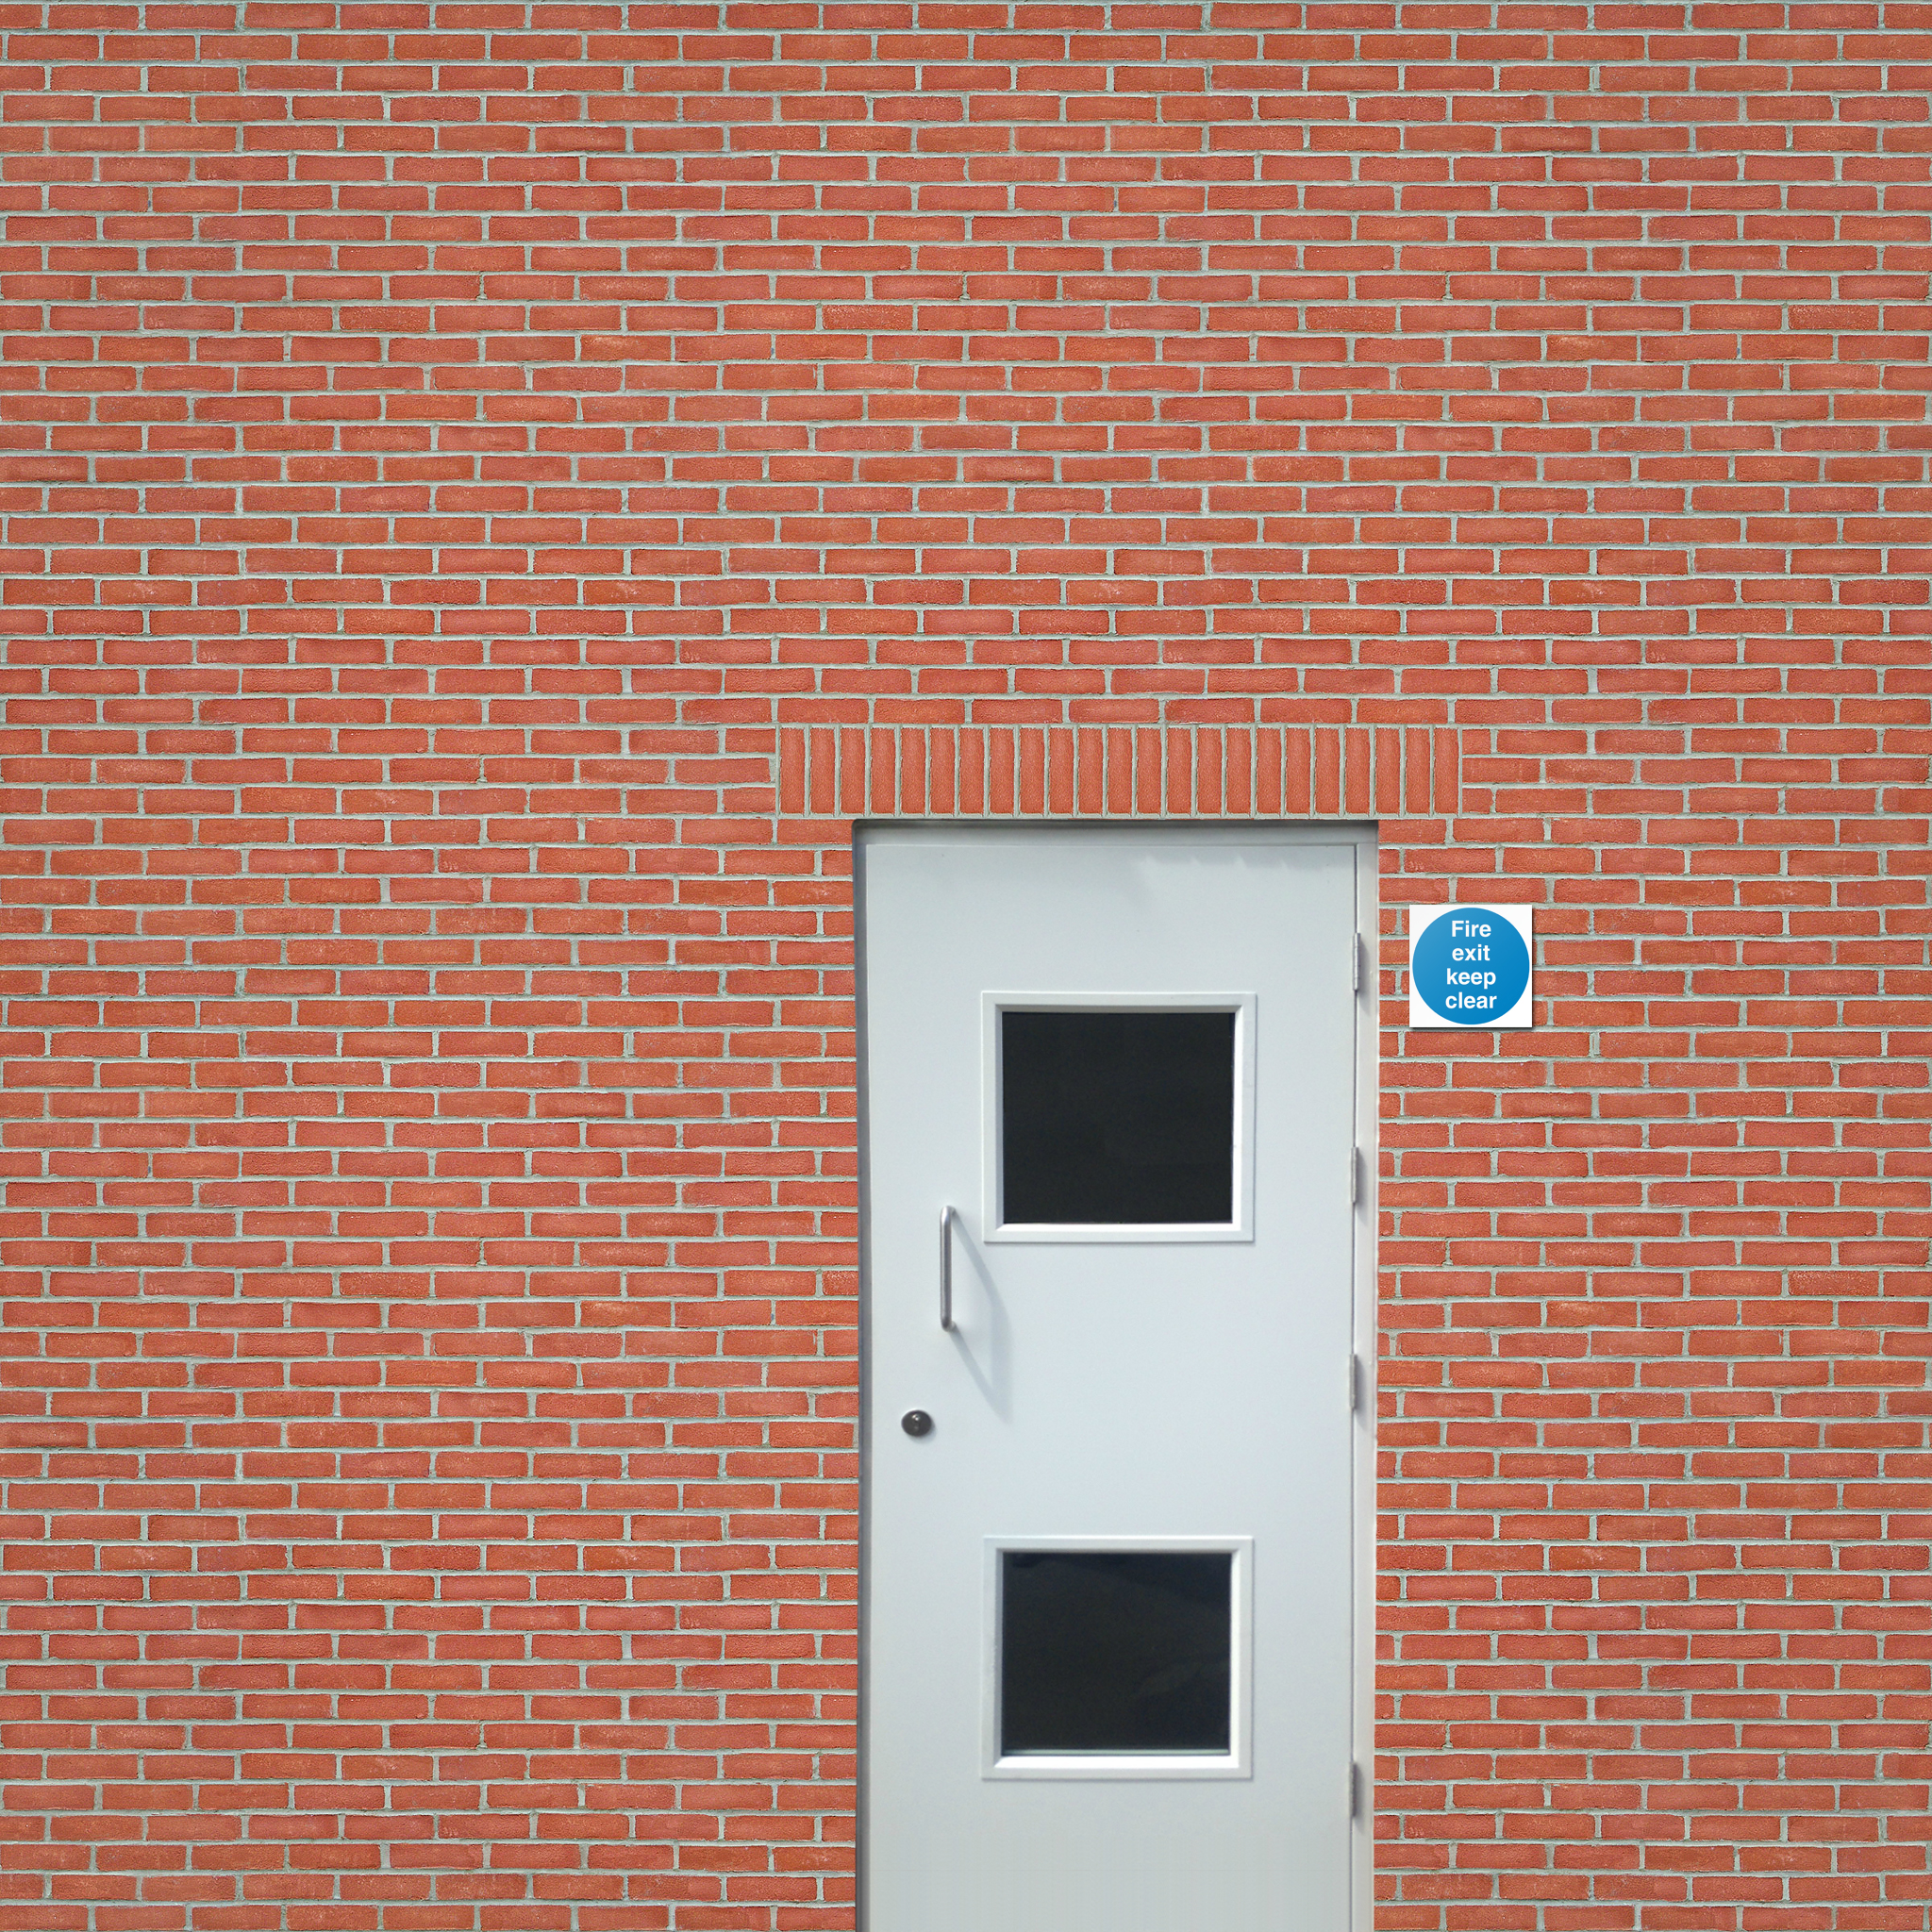 Steel doors combine security and fire safety